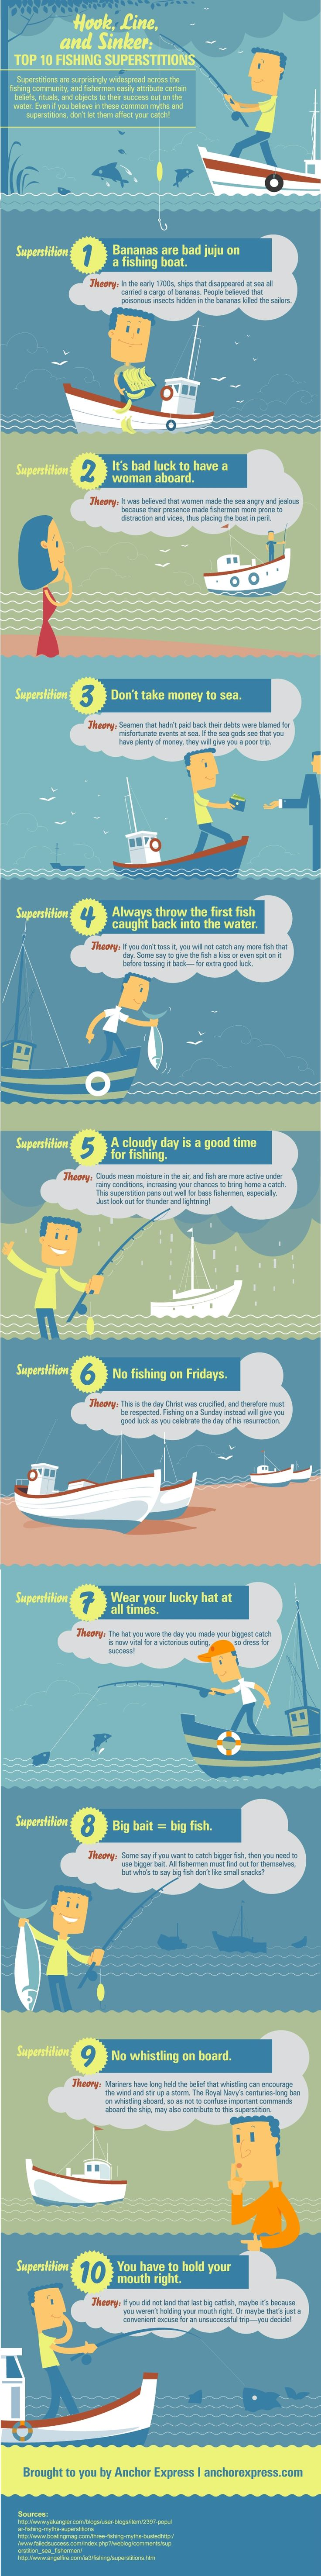 Superstitions are surprisingly widespread across the fishing community, and fishermen easily attribute certain beliefs, rituals and objects to their success out on the water. Even if you believe in these common myths and superstitions, don't let them affect your catch! Be sure to also use proper fishing equipment.